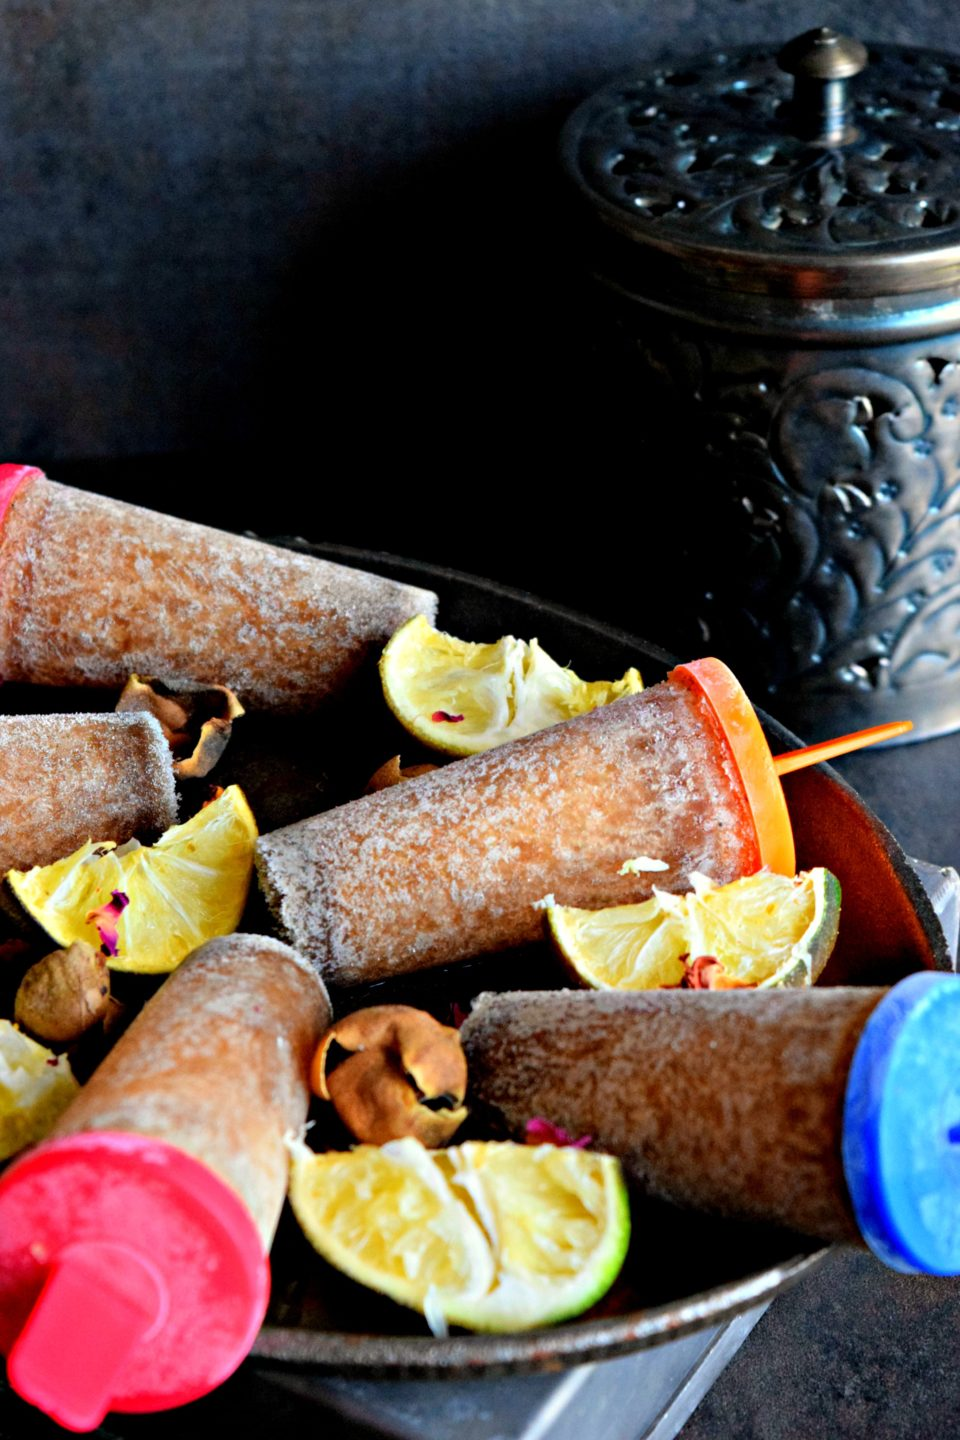 Masala Soda Popsicle is a quick fix ice pop recipe using coca cola & some Indian spices. When you have nothing at hand, make this yummy Popsicle & cool off!